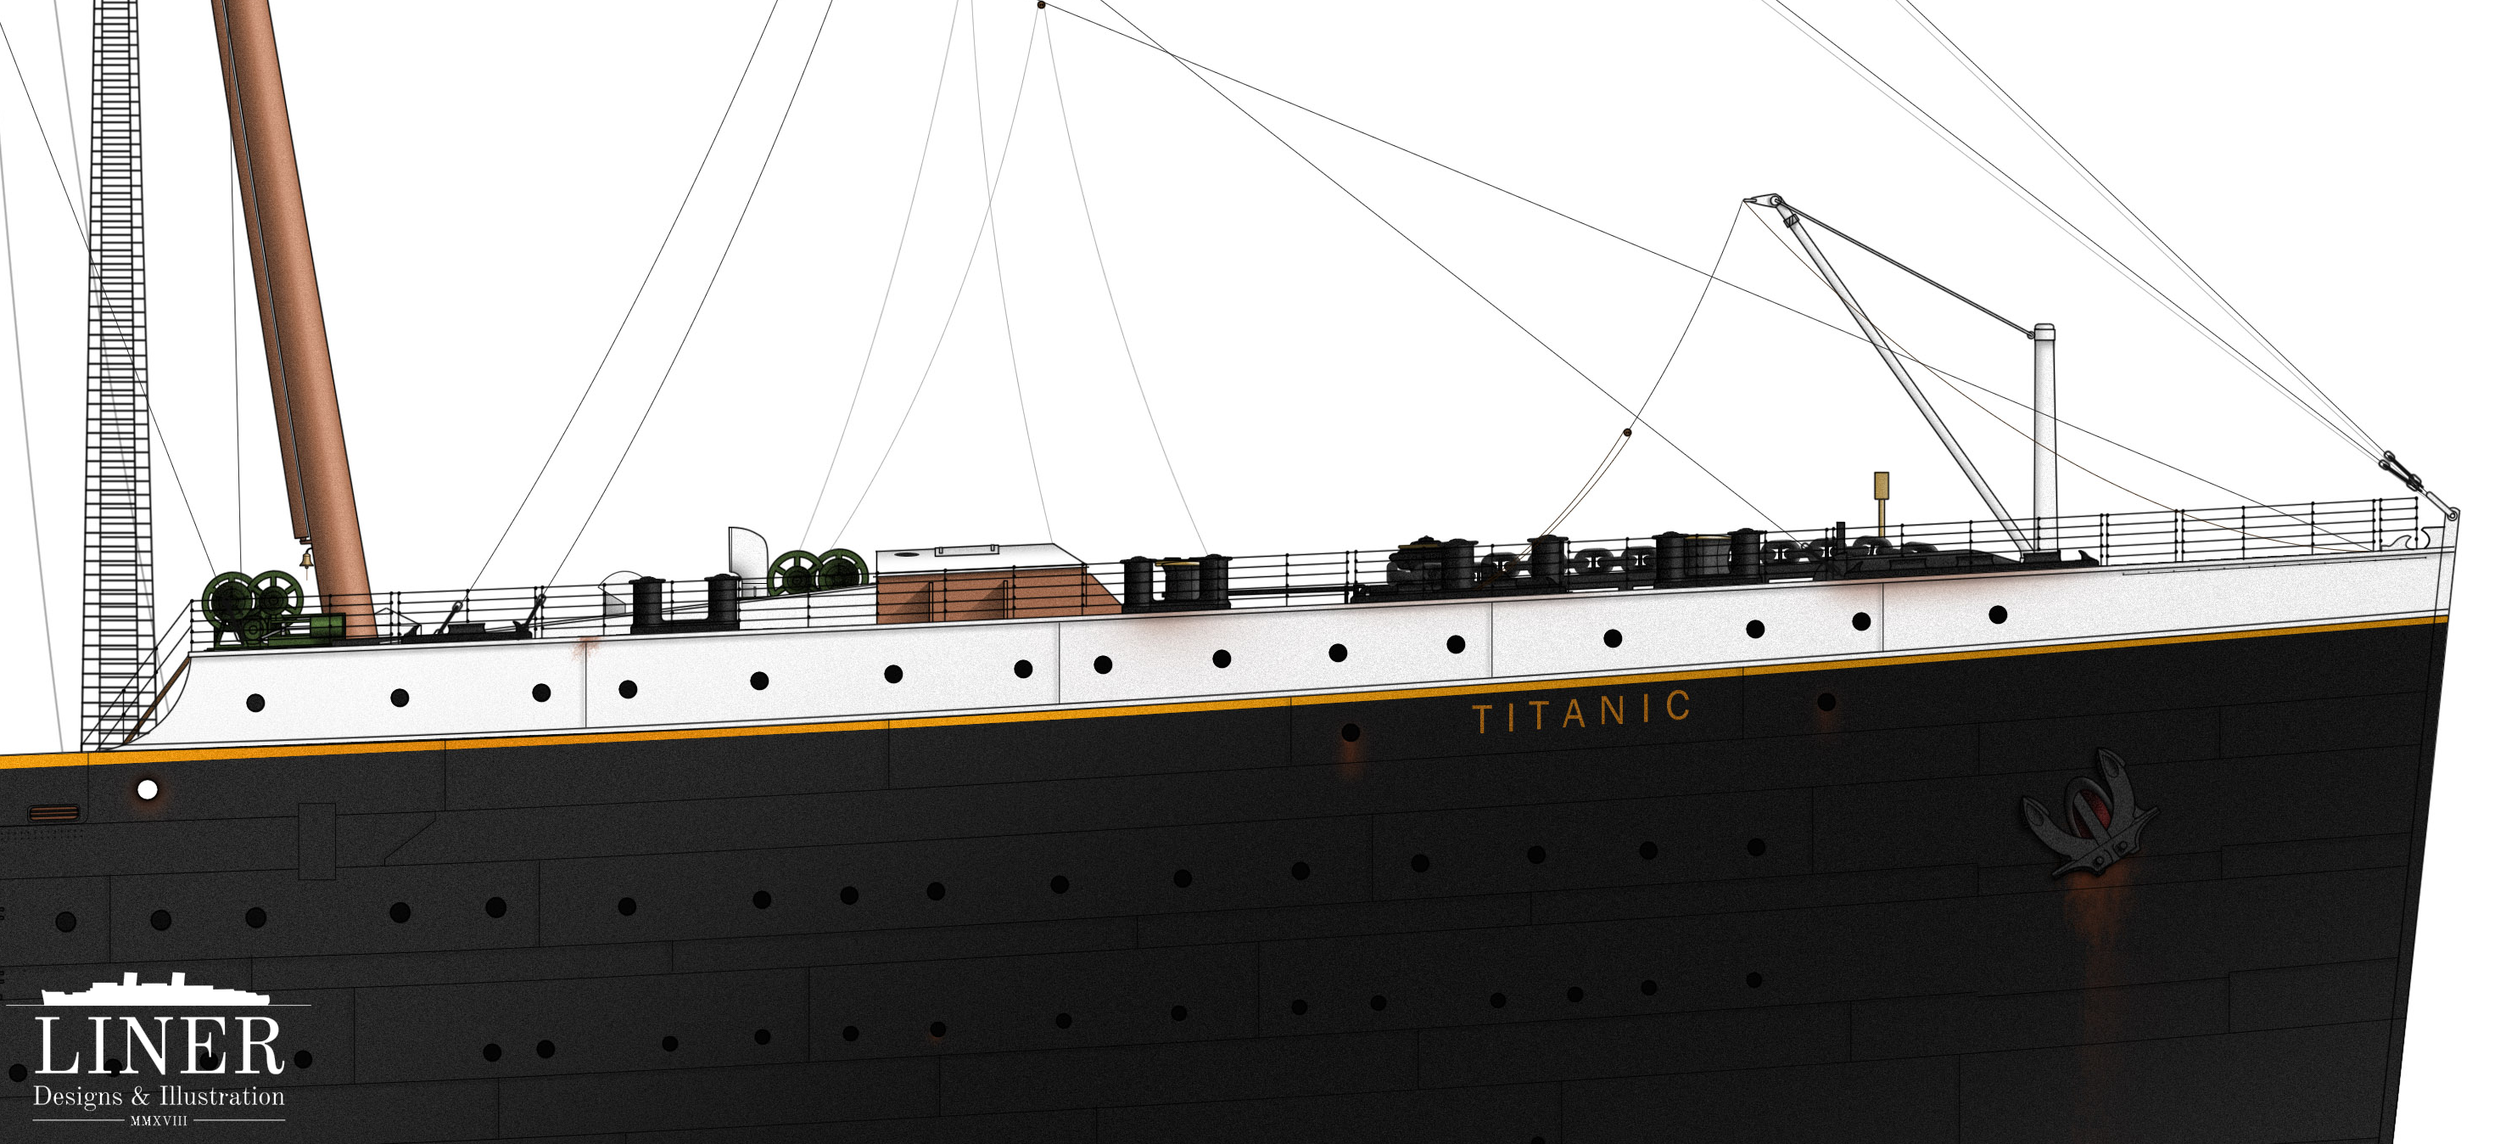 Titanic's forecastle deck, made famous in the 1997 film. In reality, passengers were not allowed forward of the cargo hatch (brown rectangular structure located in the center.)